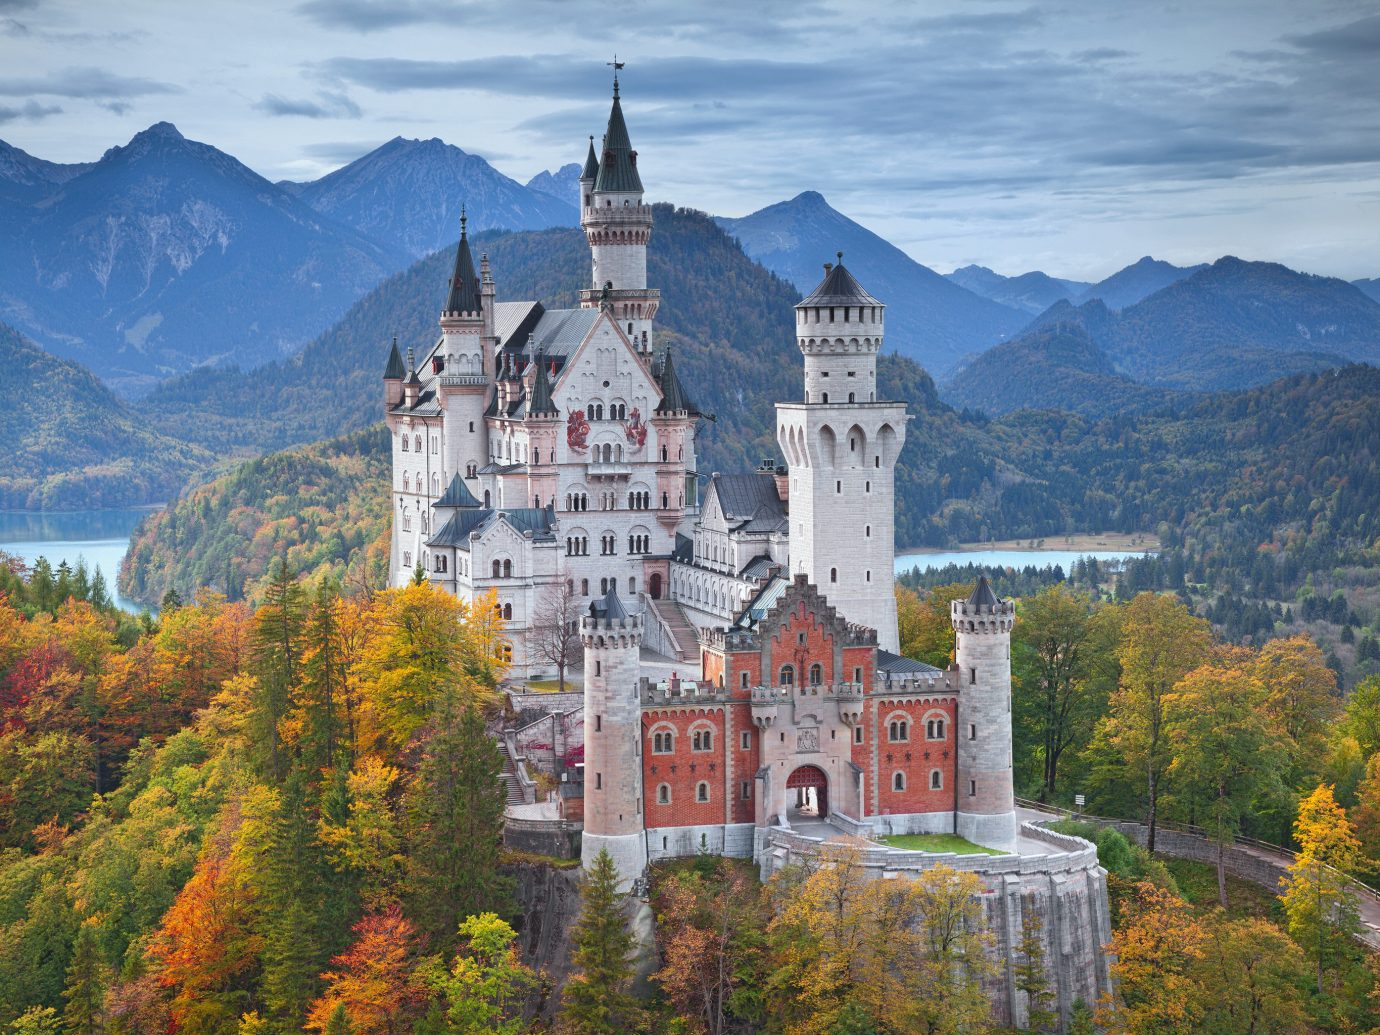 Offbeat Trip Ideas mountain tree outdoor mountainous landforms château castle mountain range Town landmark building season background autumn tourism alps monastery surrounded Forest hillside lush